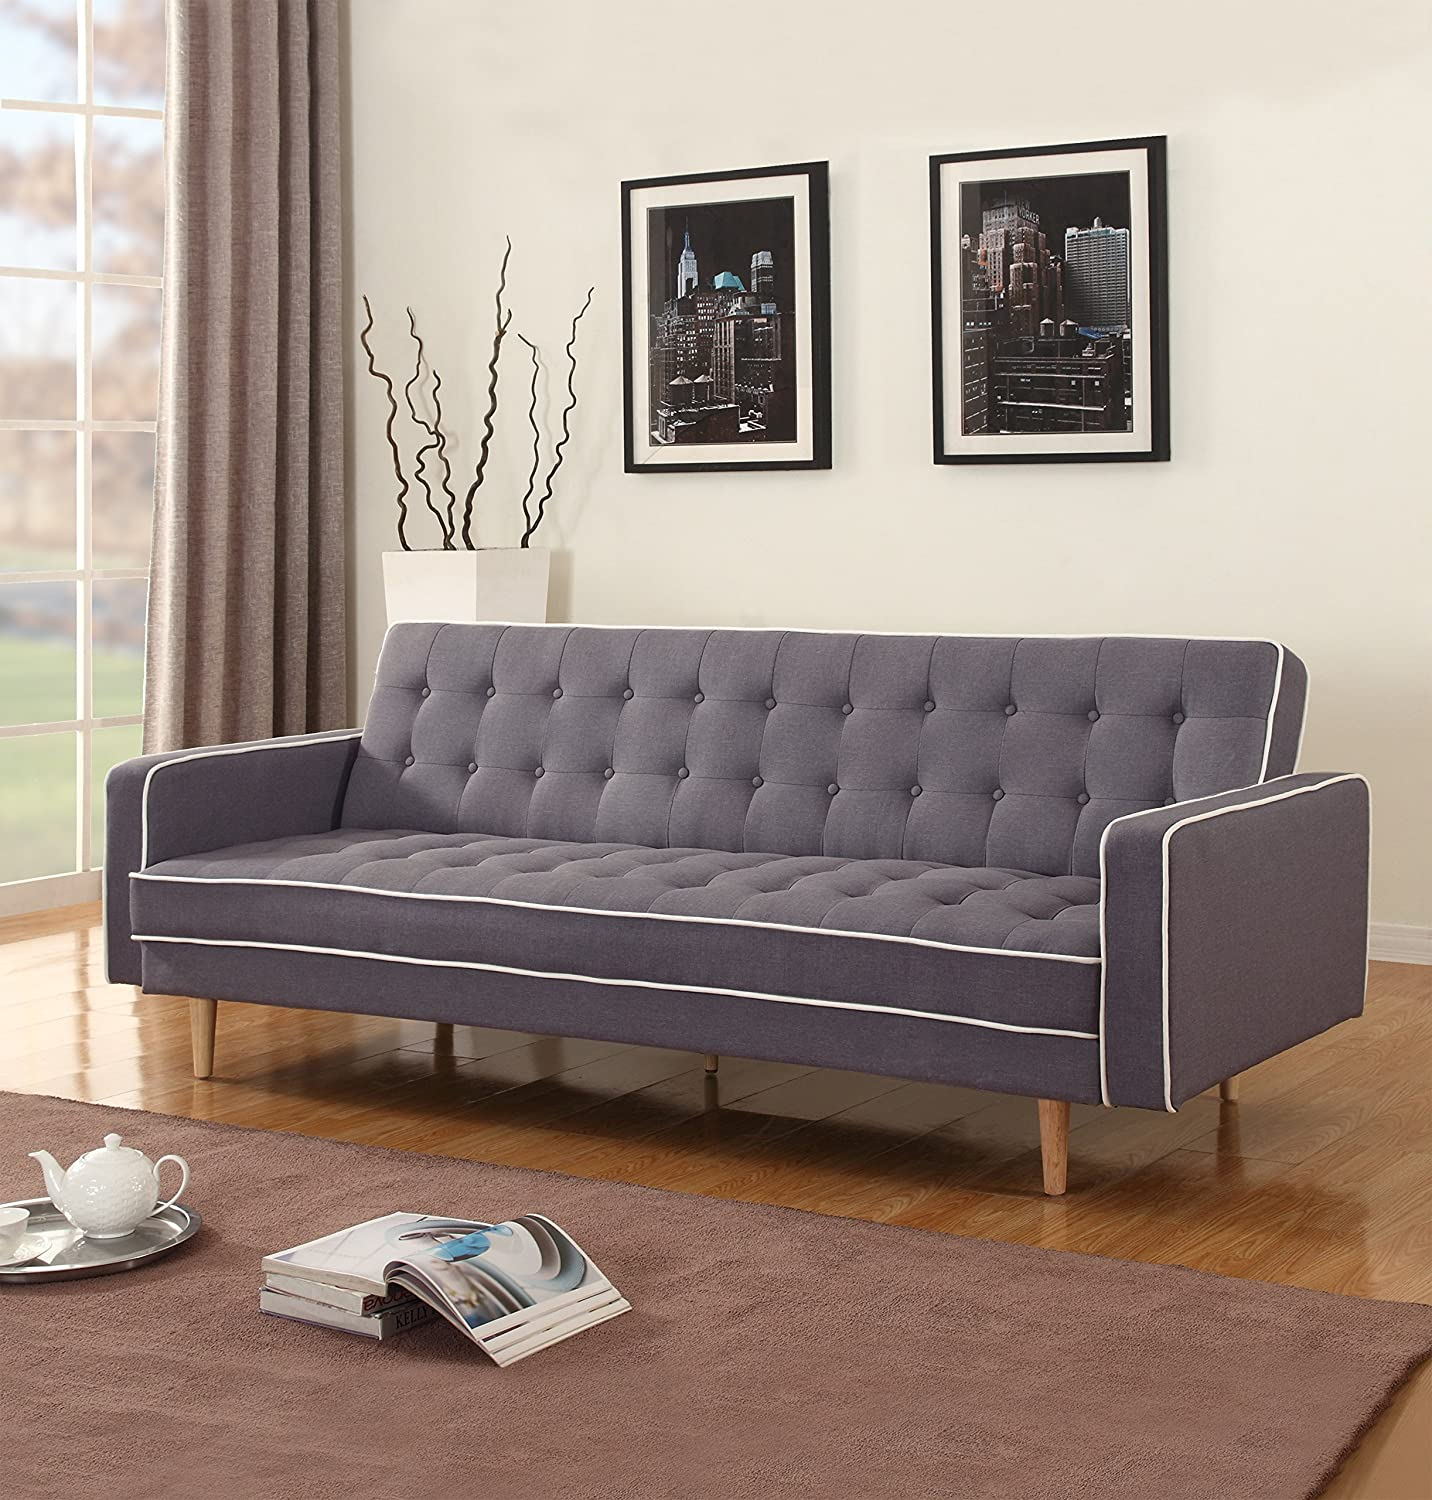 amazoncom midcentury modern two tone vintage linen sleeper futon sofa grey beige red light grey kitchen u0026 dining - Futon Sofa Beds